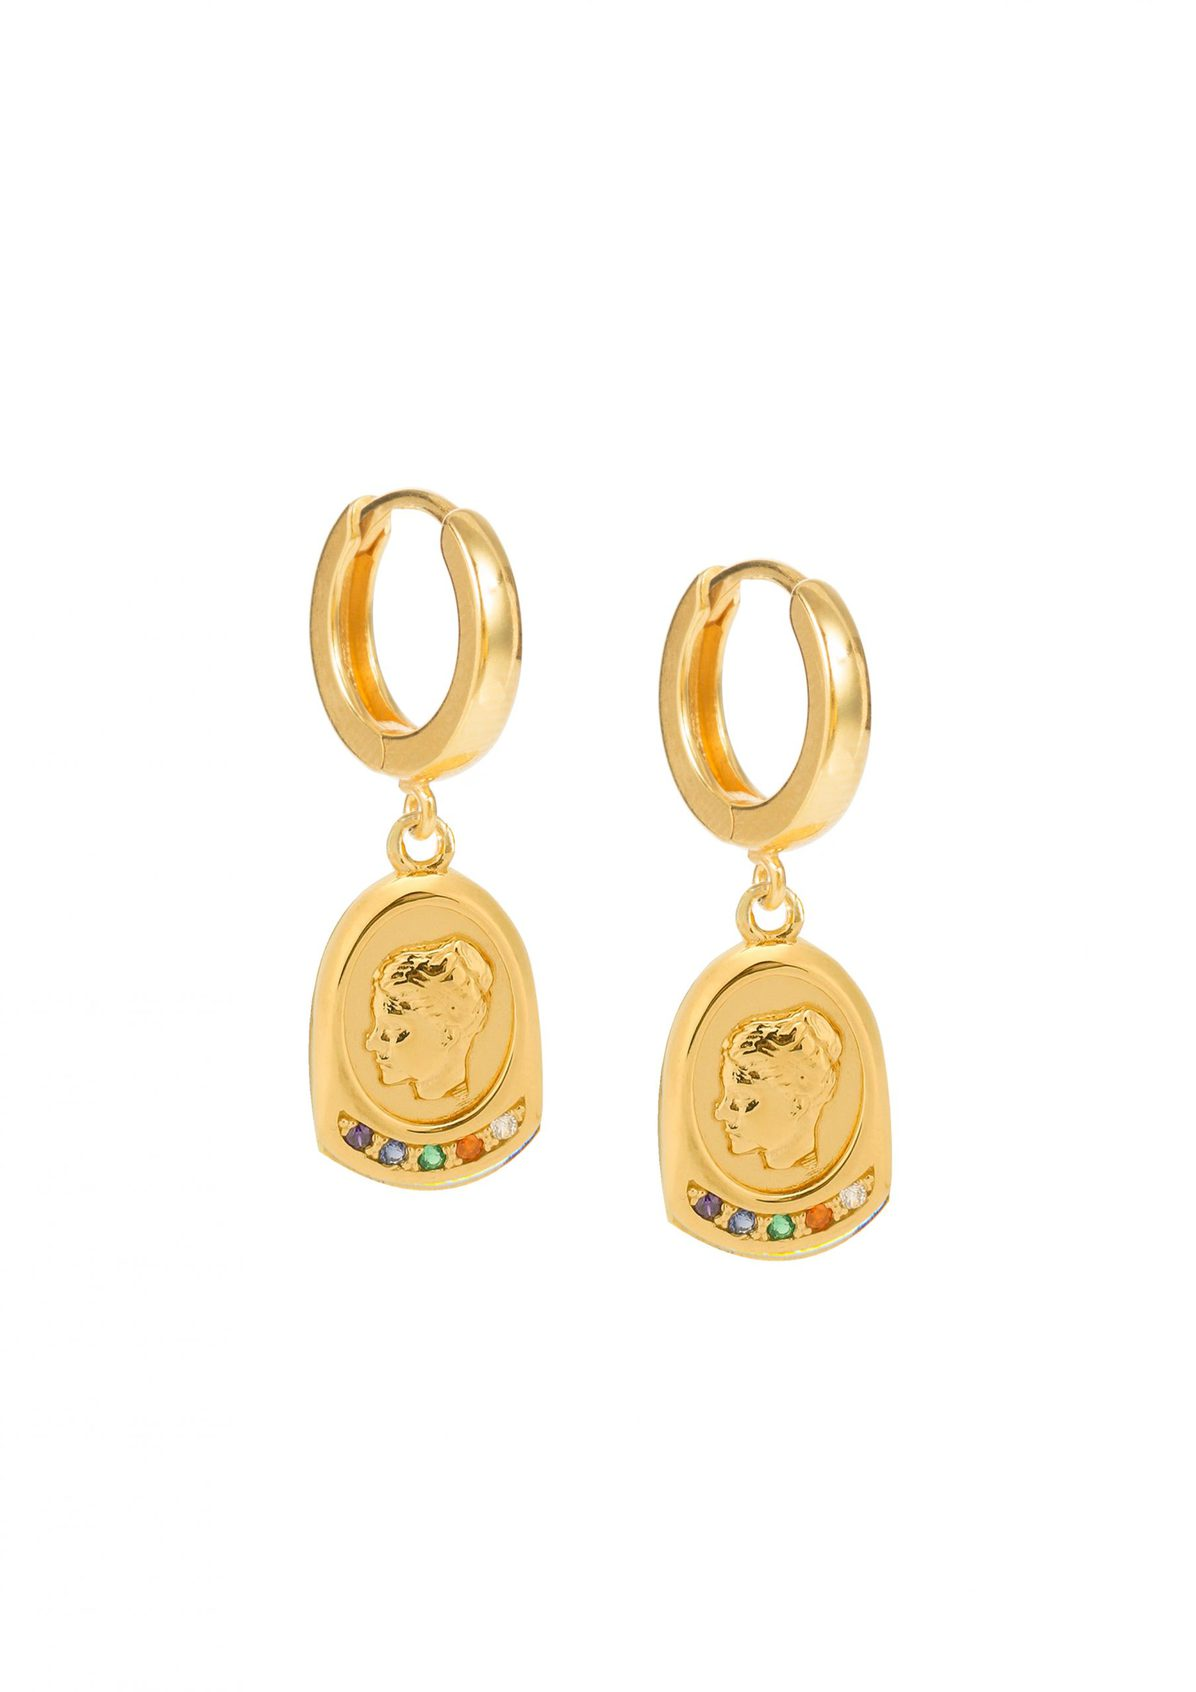 HYGEIA SLIP ON EARRINGS